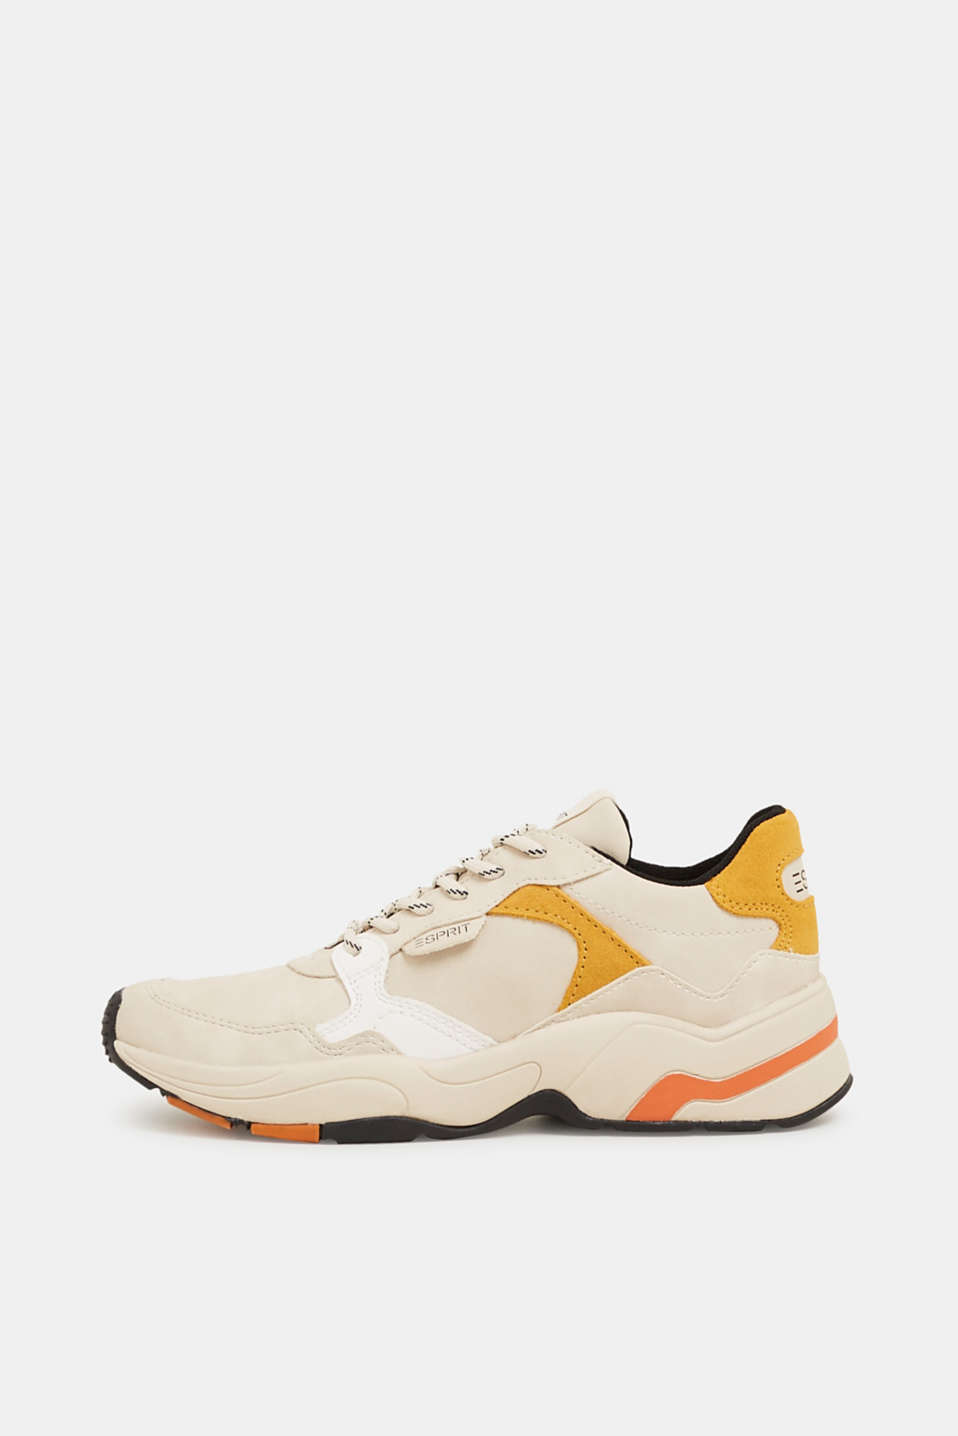 With leather: Trainers with an oversized sole